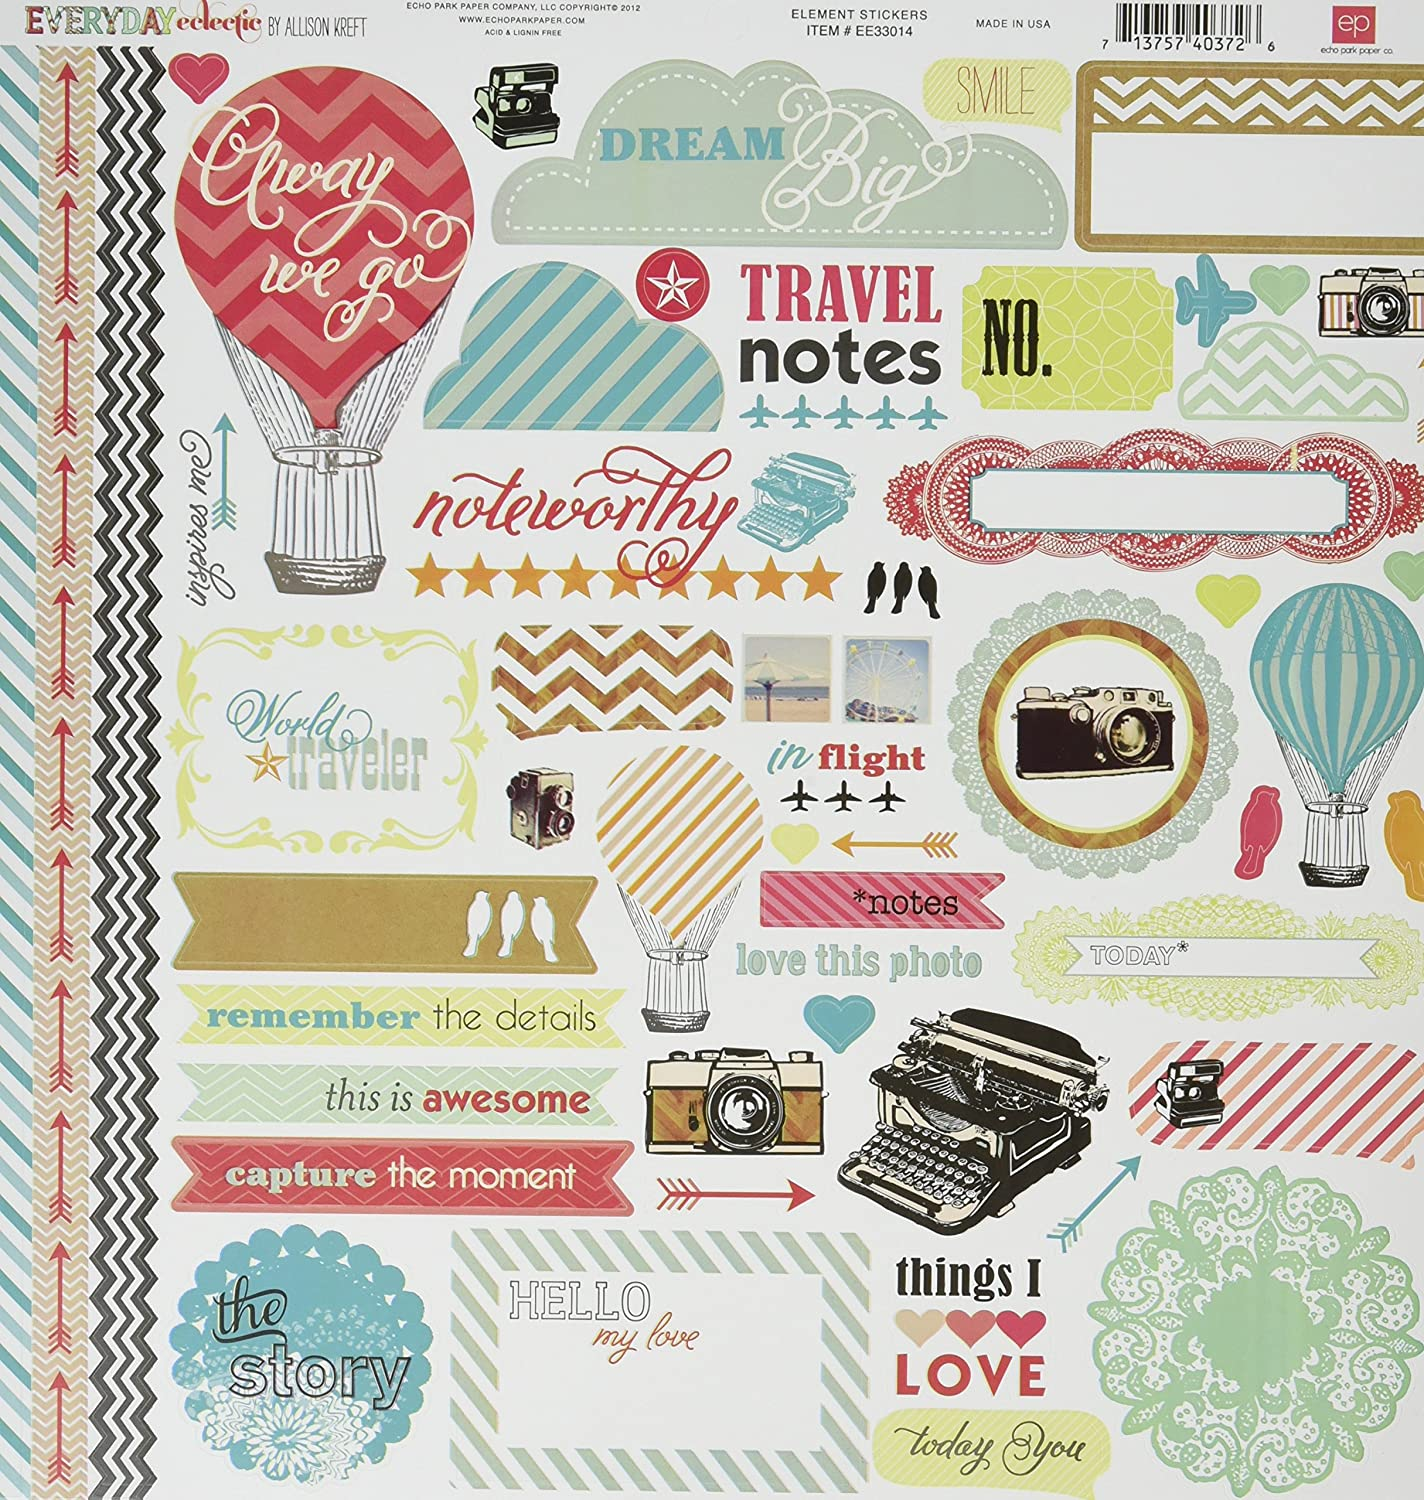 Echo Park Paper Everyday Eclectic Collection Scrapbooking Kit by Echo Park Paper B008CQ5F2C